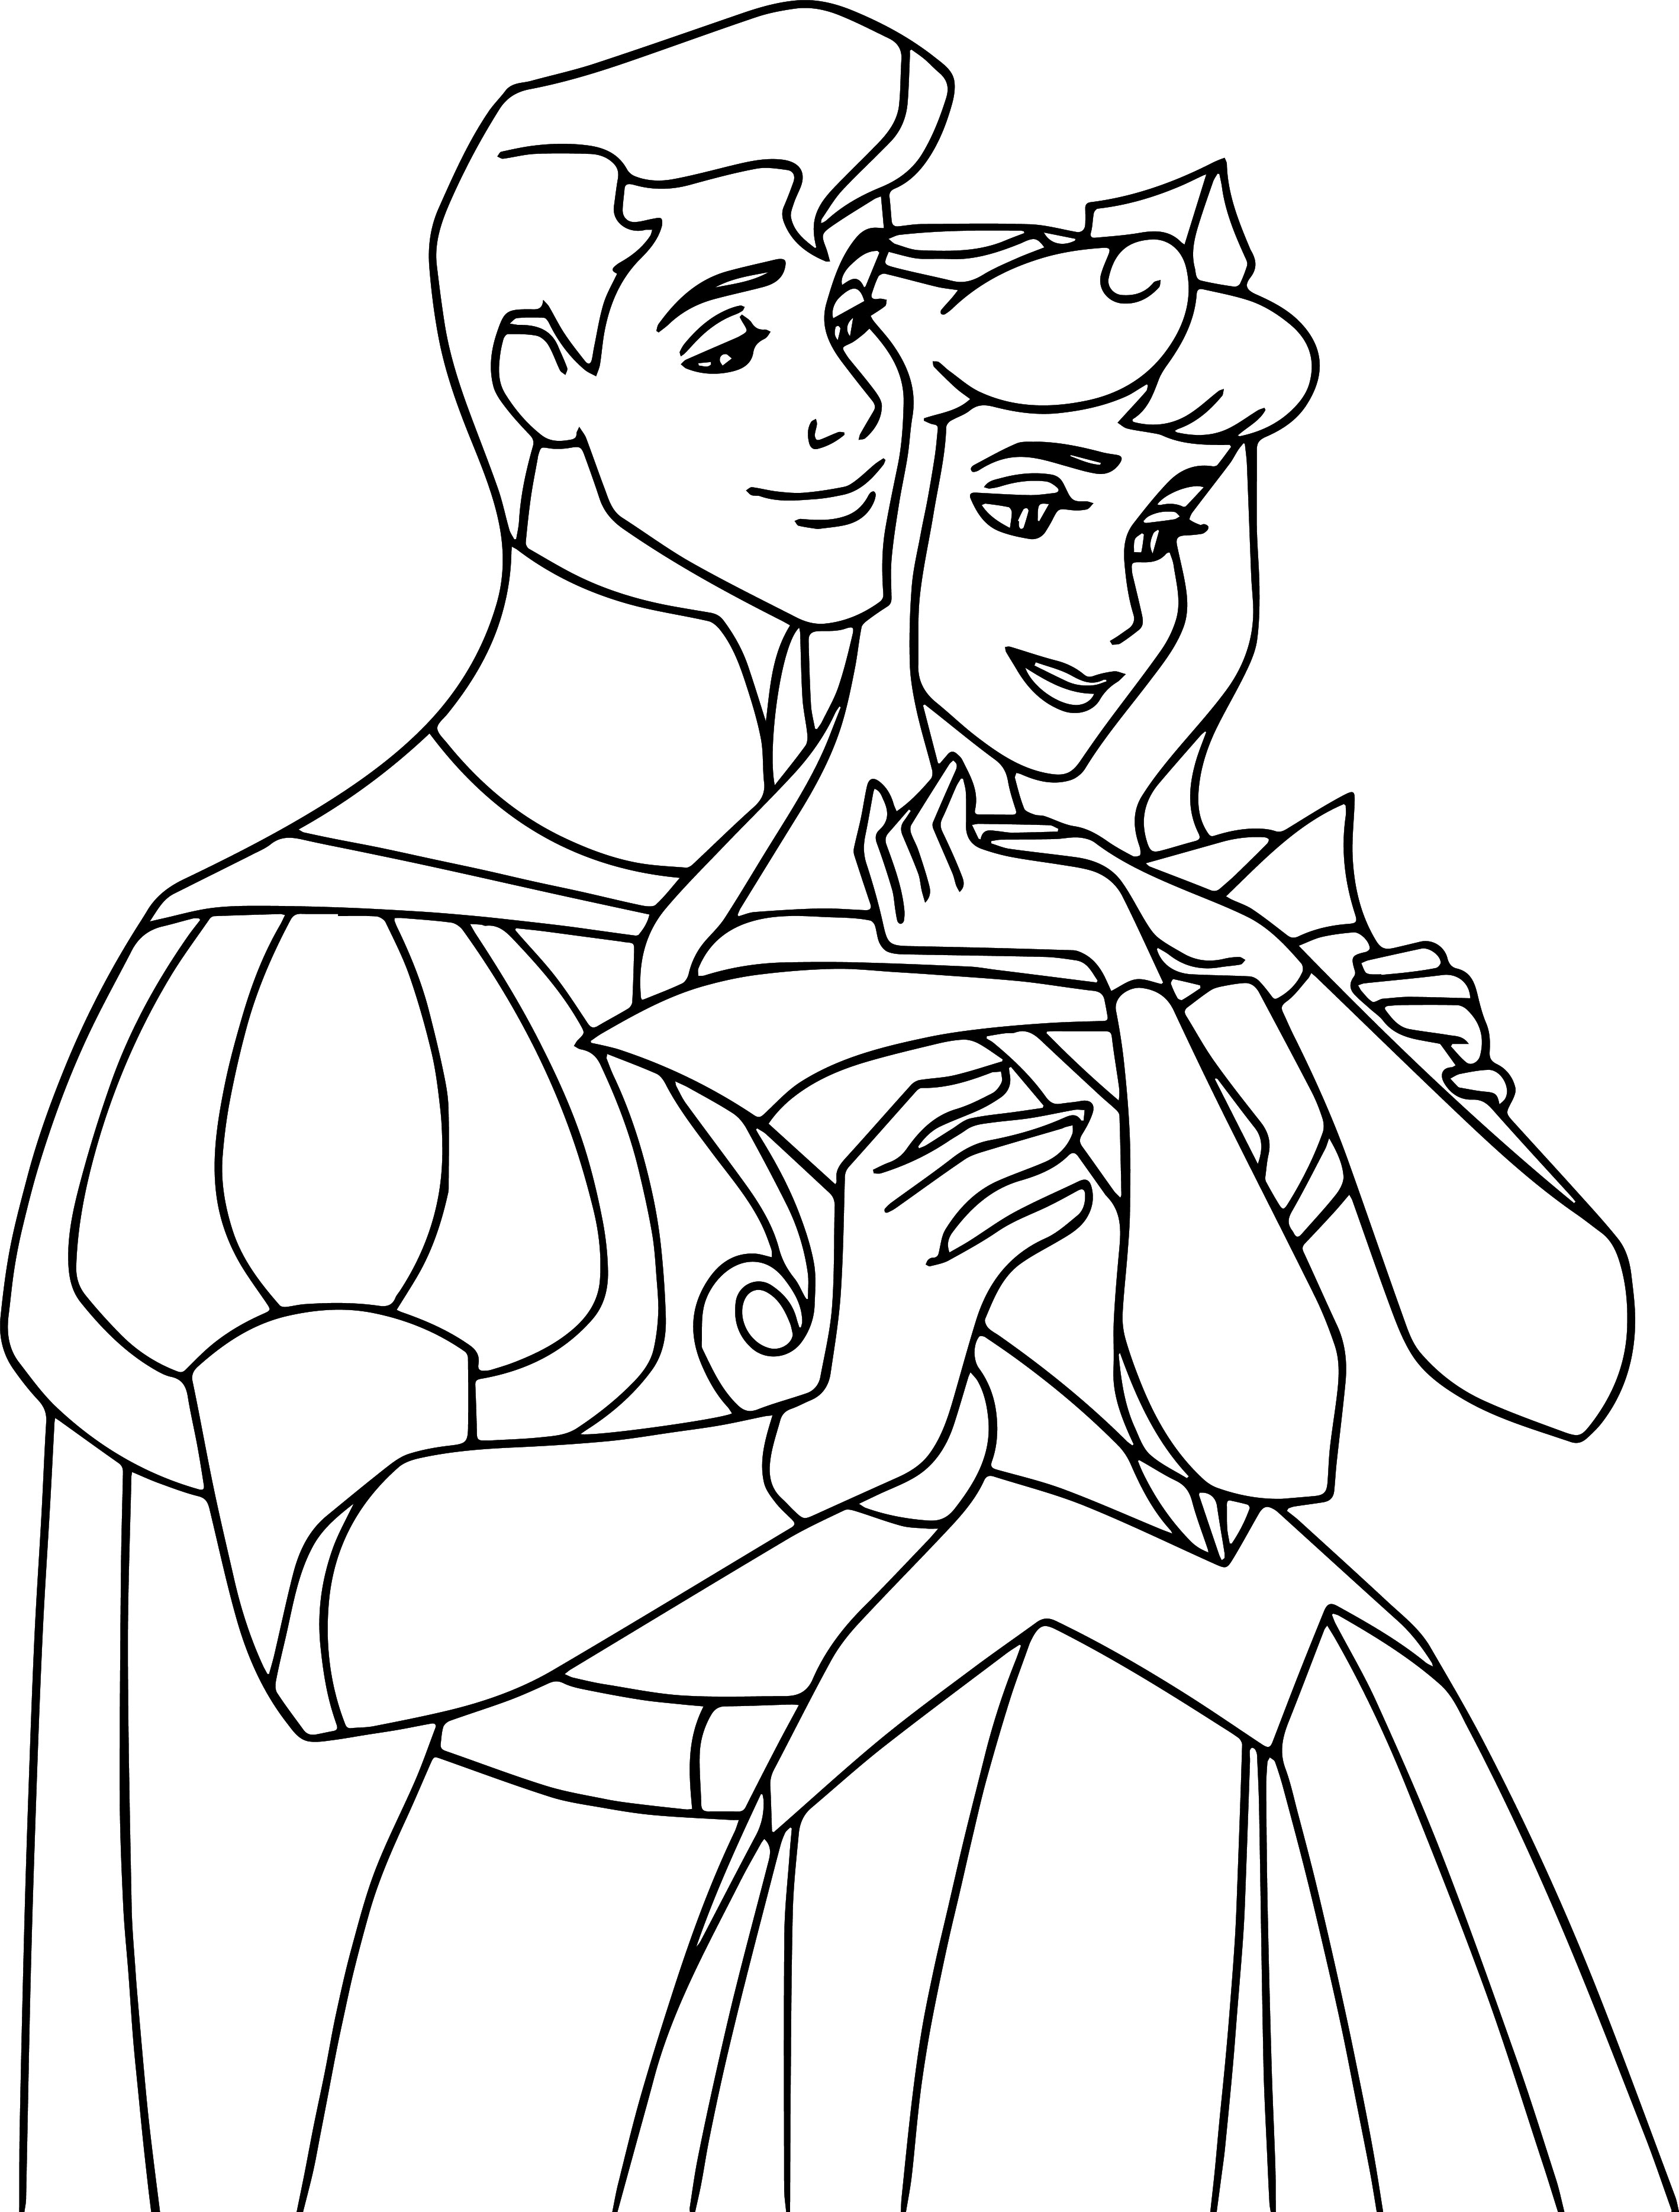 Disney Story Aurora and Phillip Coloring Pages